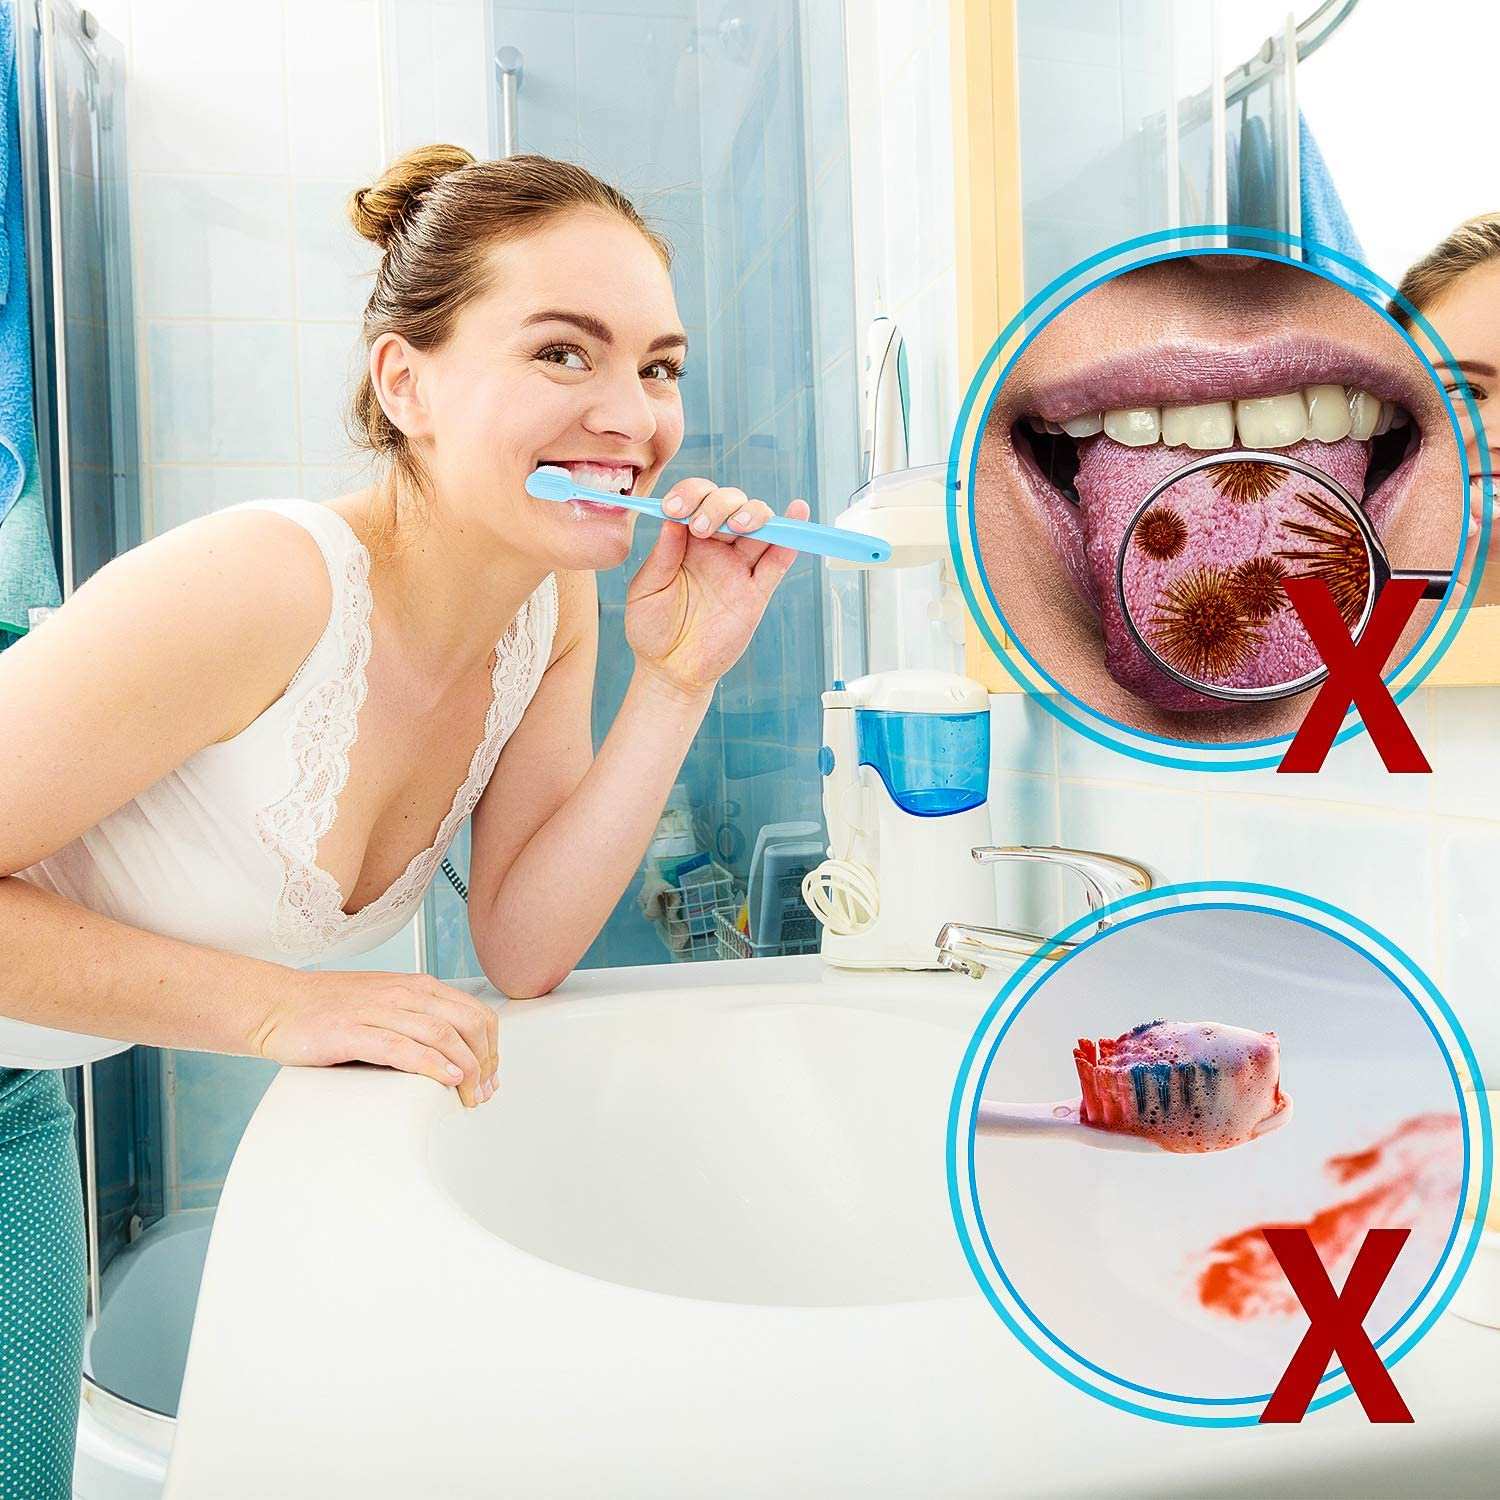 4 Pieces Soft Micro-Nano Manual Toothbrush Extra Soft Bristles Toothbrush with 20,000 Bristles for Fragile Gums Adult Kid Children (Blue, Pink): Health & Personal Care